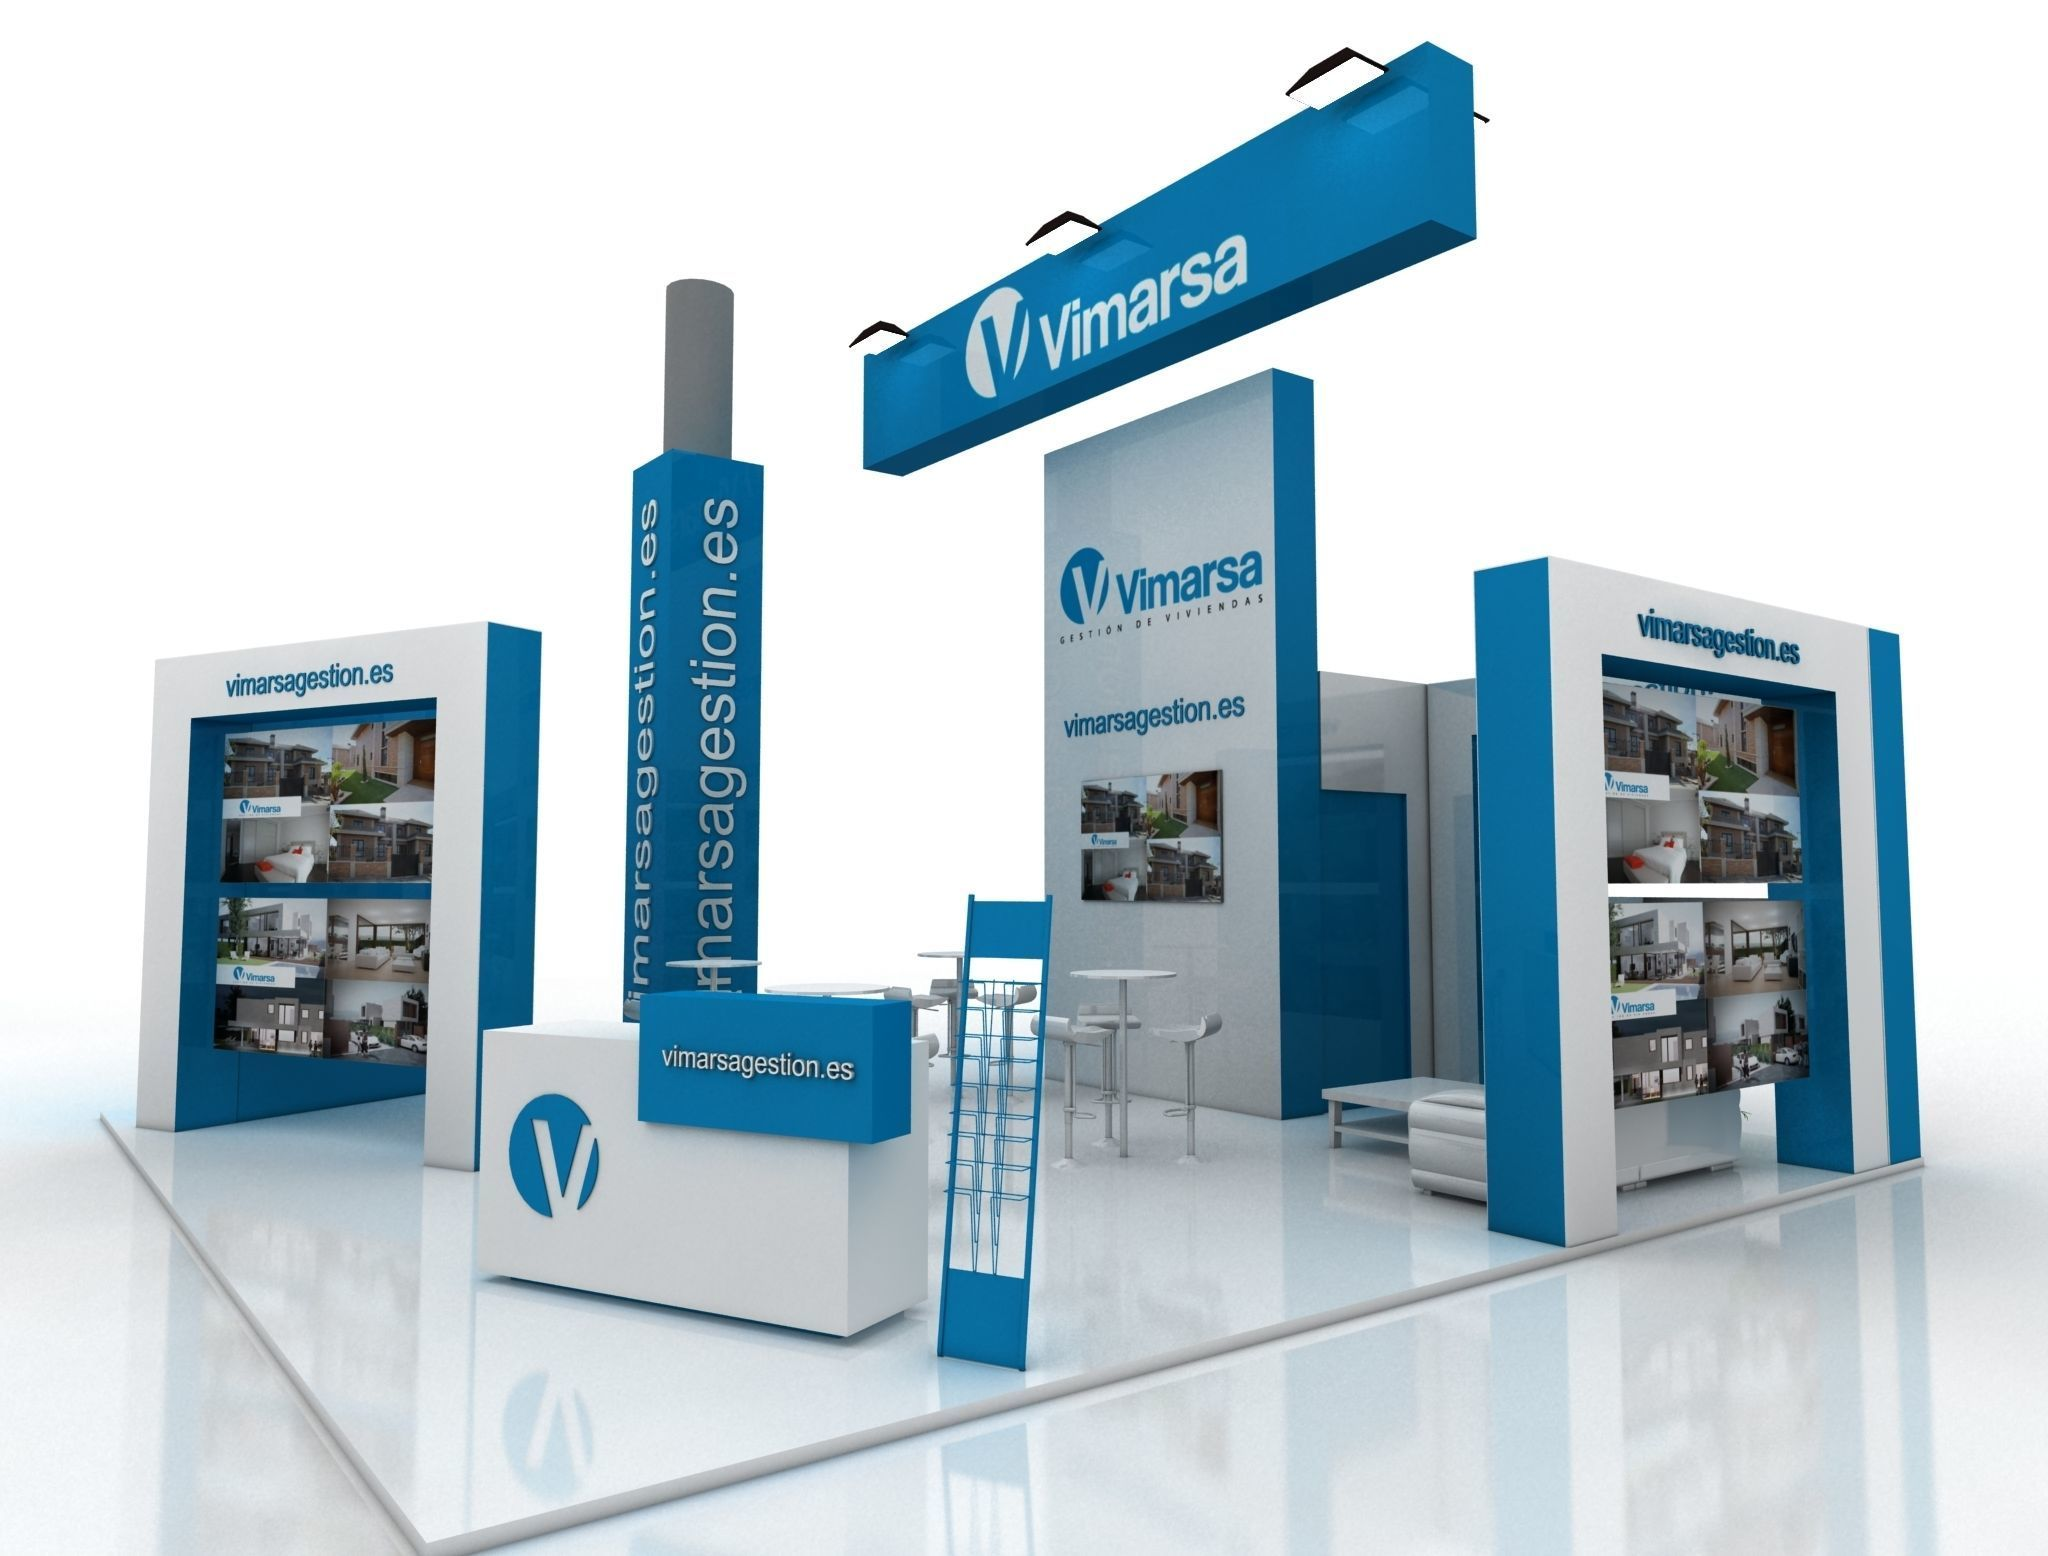 Exhibition Stand 3d Model Free Download : D asset realtime exhibition stand cgtrader